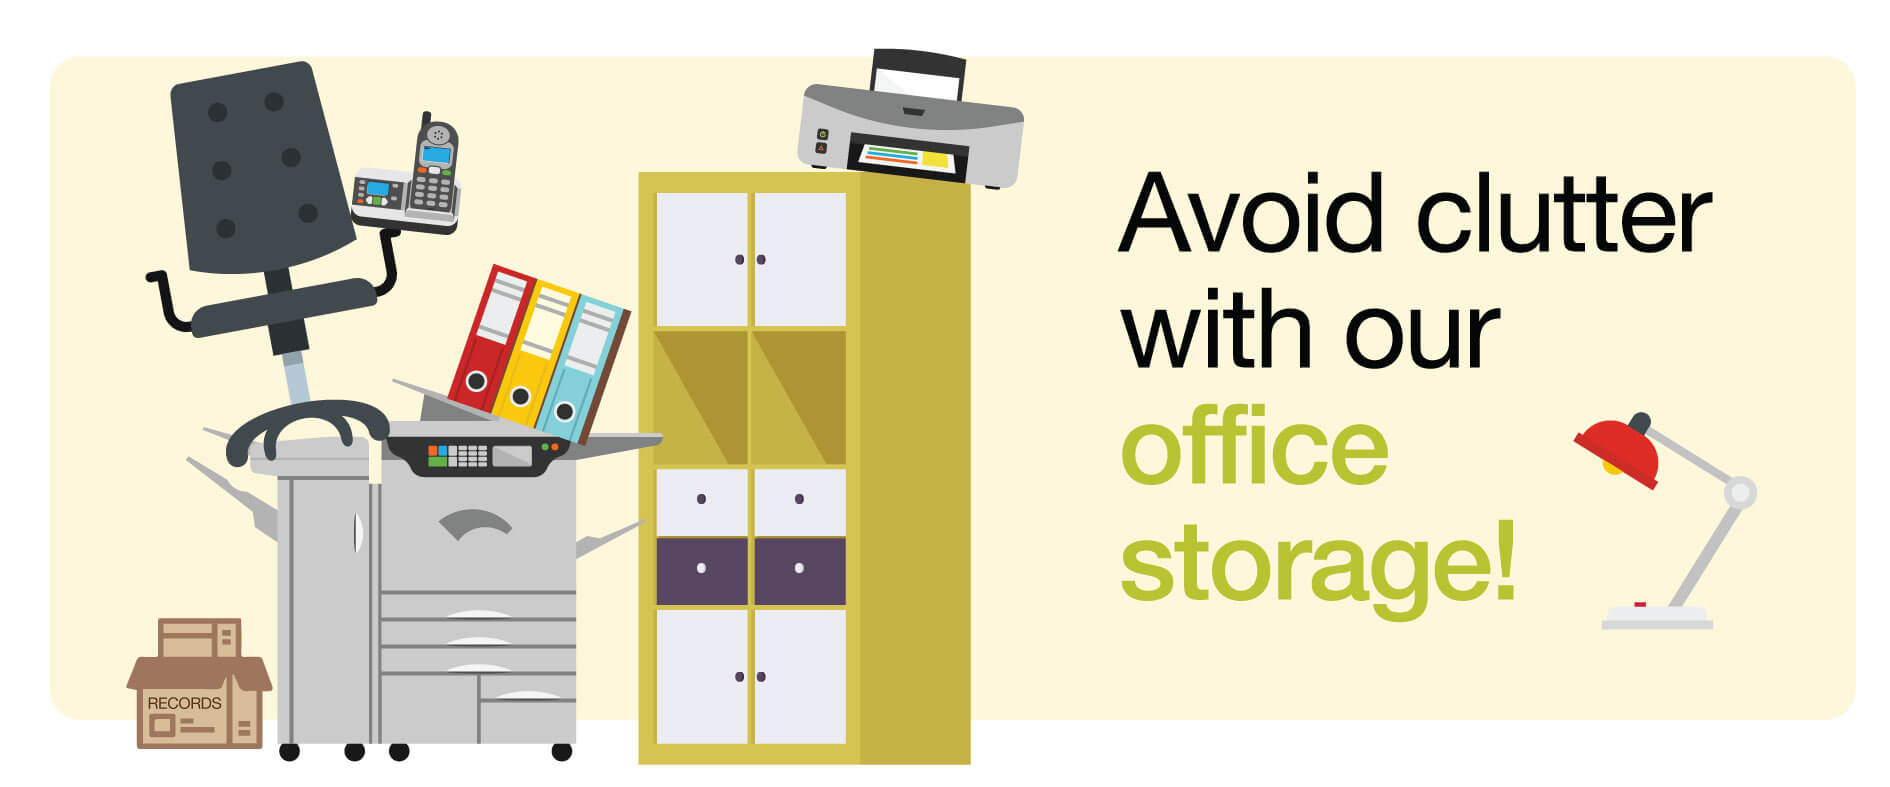 avoid-clutter-with-our-office-storage